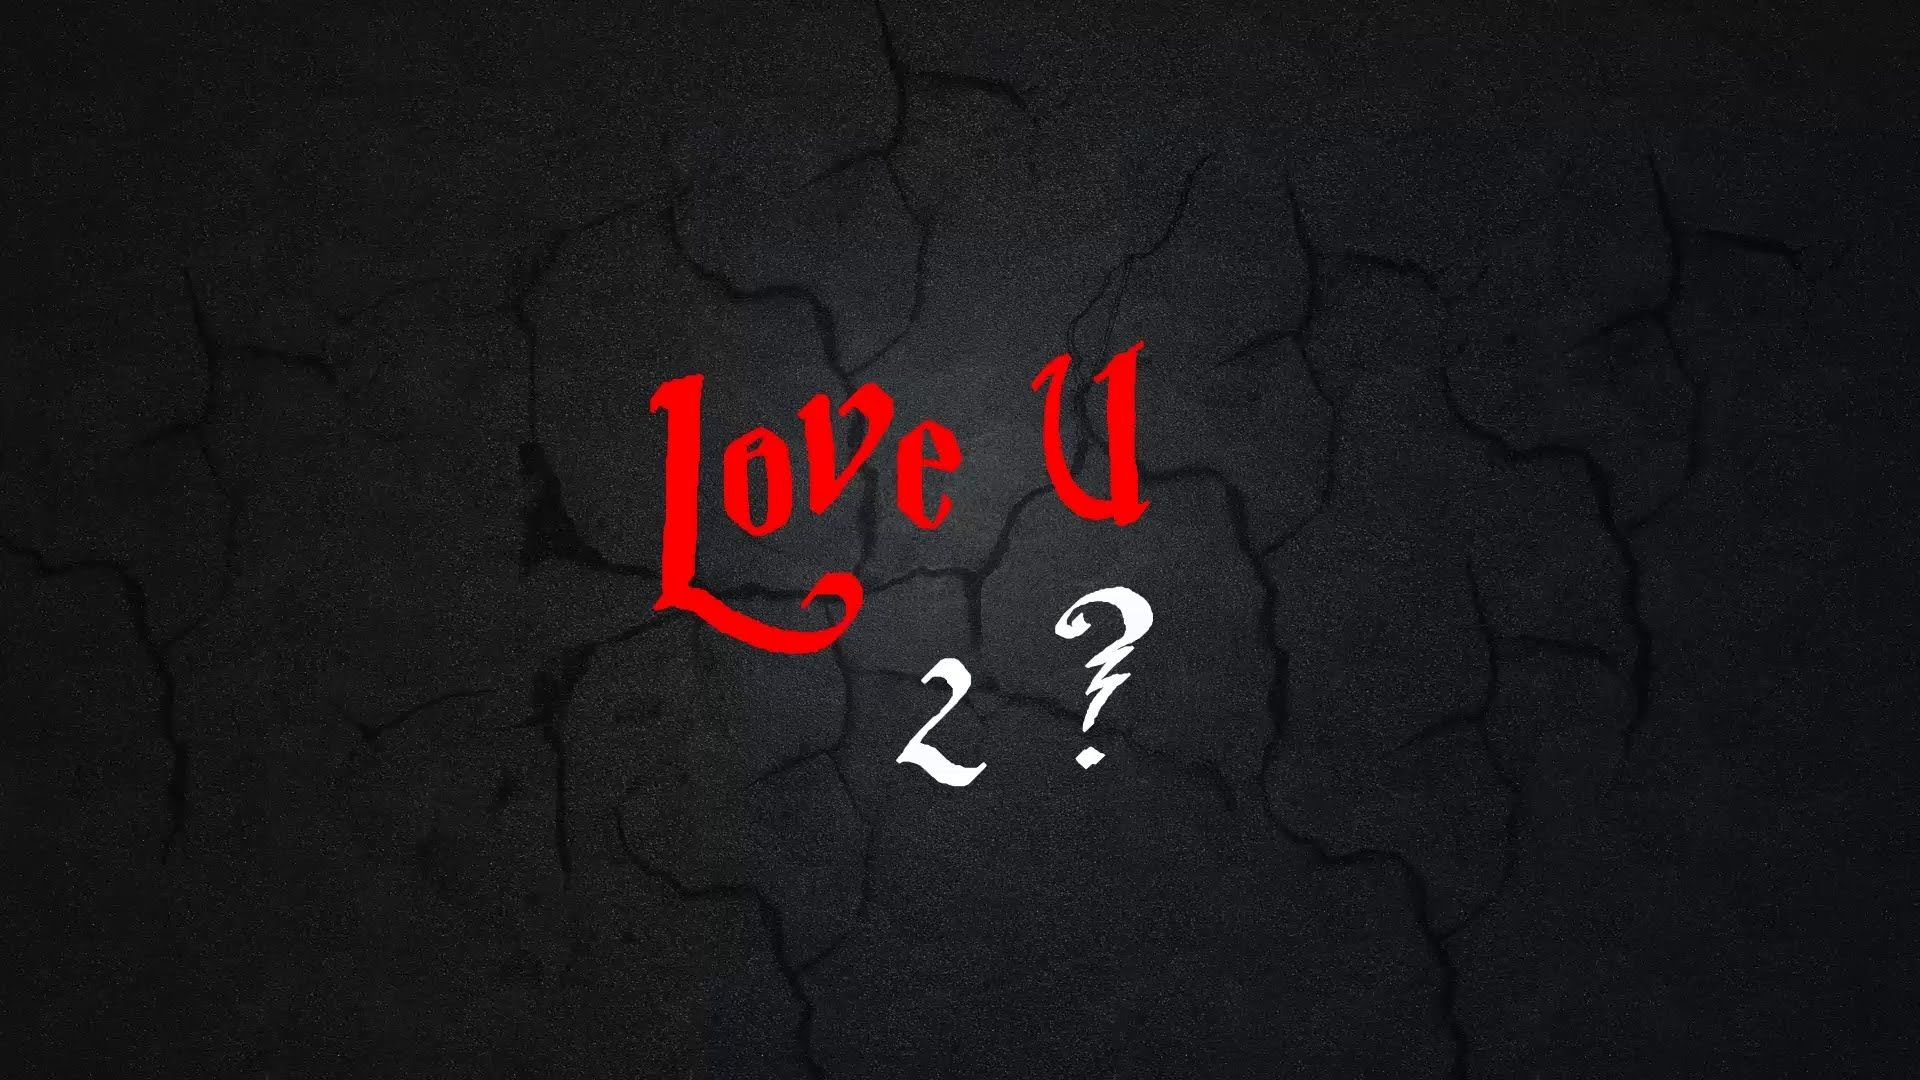 Hd wallpaper youtube - New Images Of Love U 2 Love U 2 Arshad Chotu Youtube For Images Of